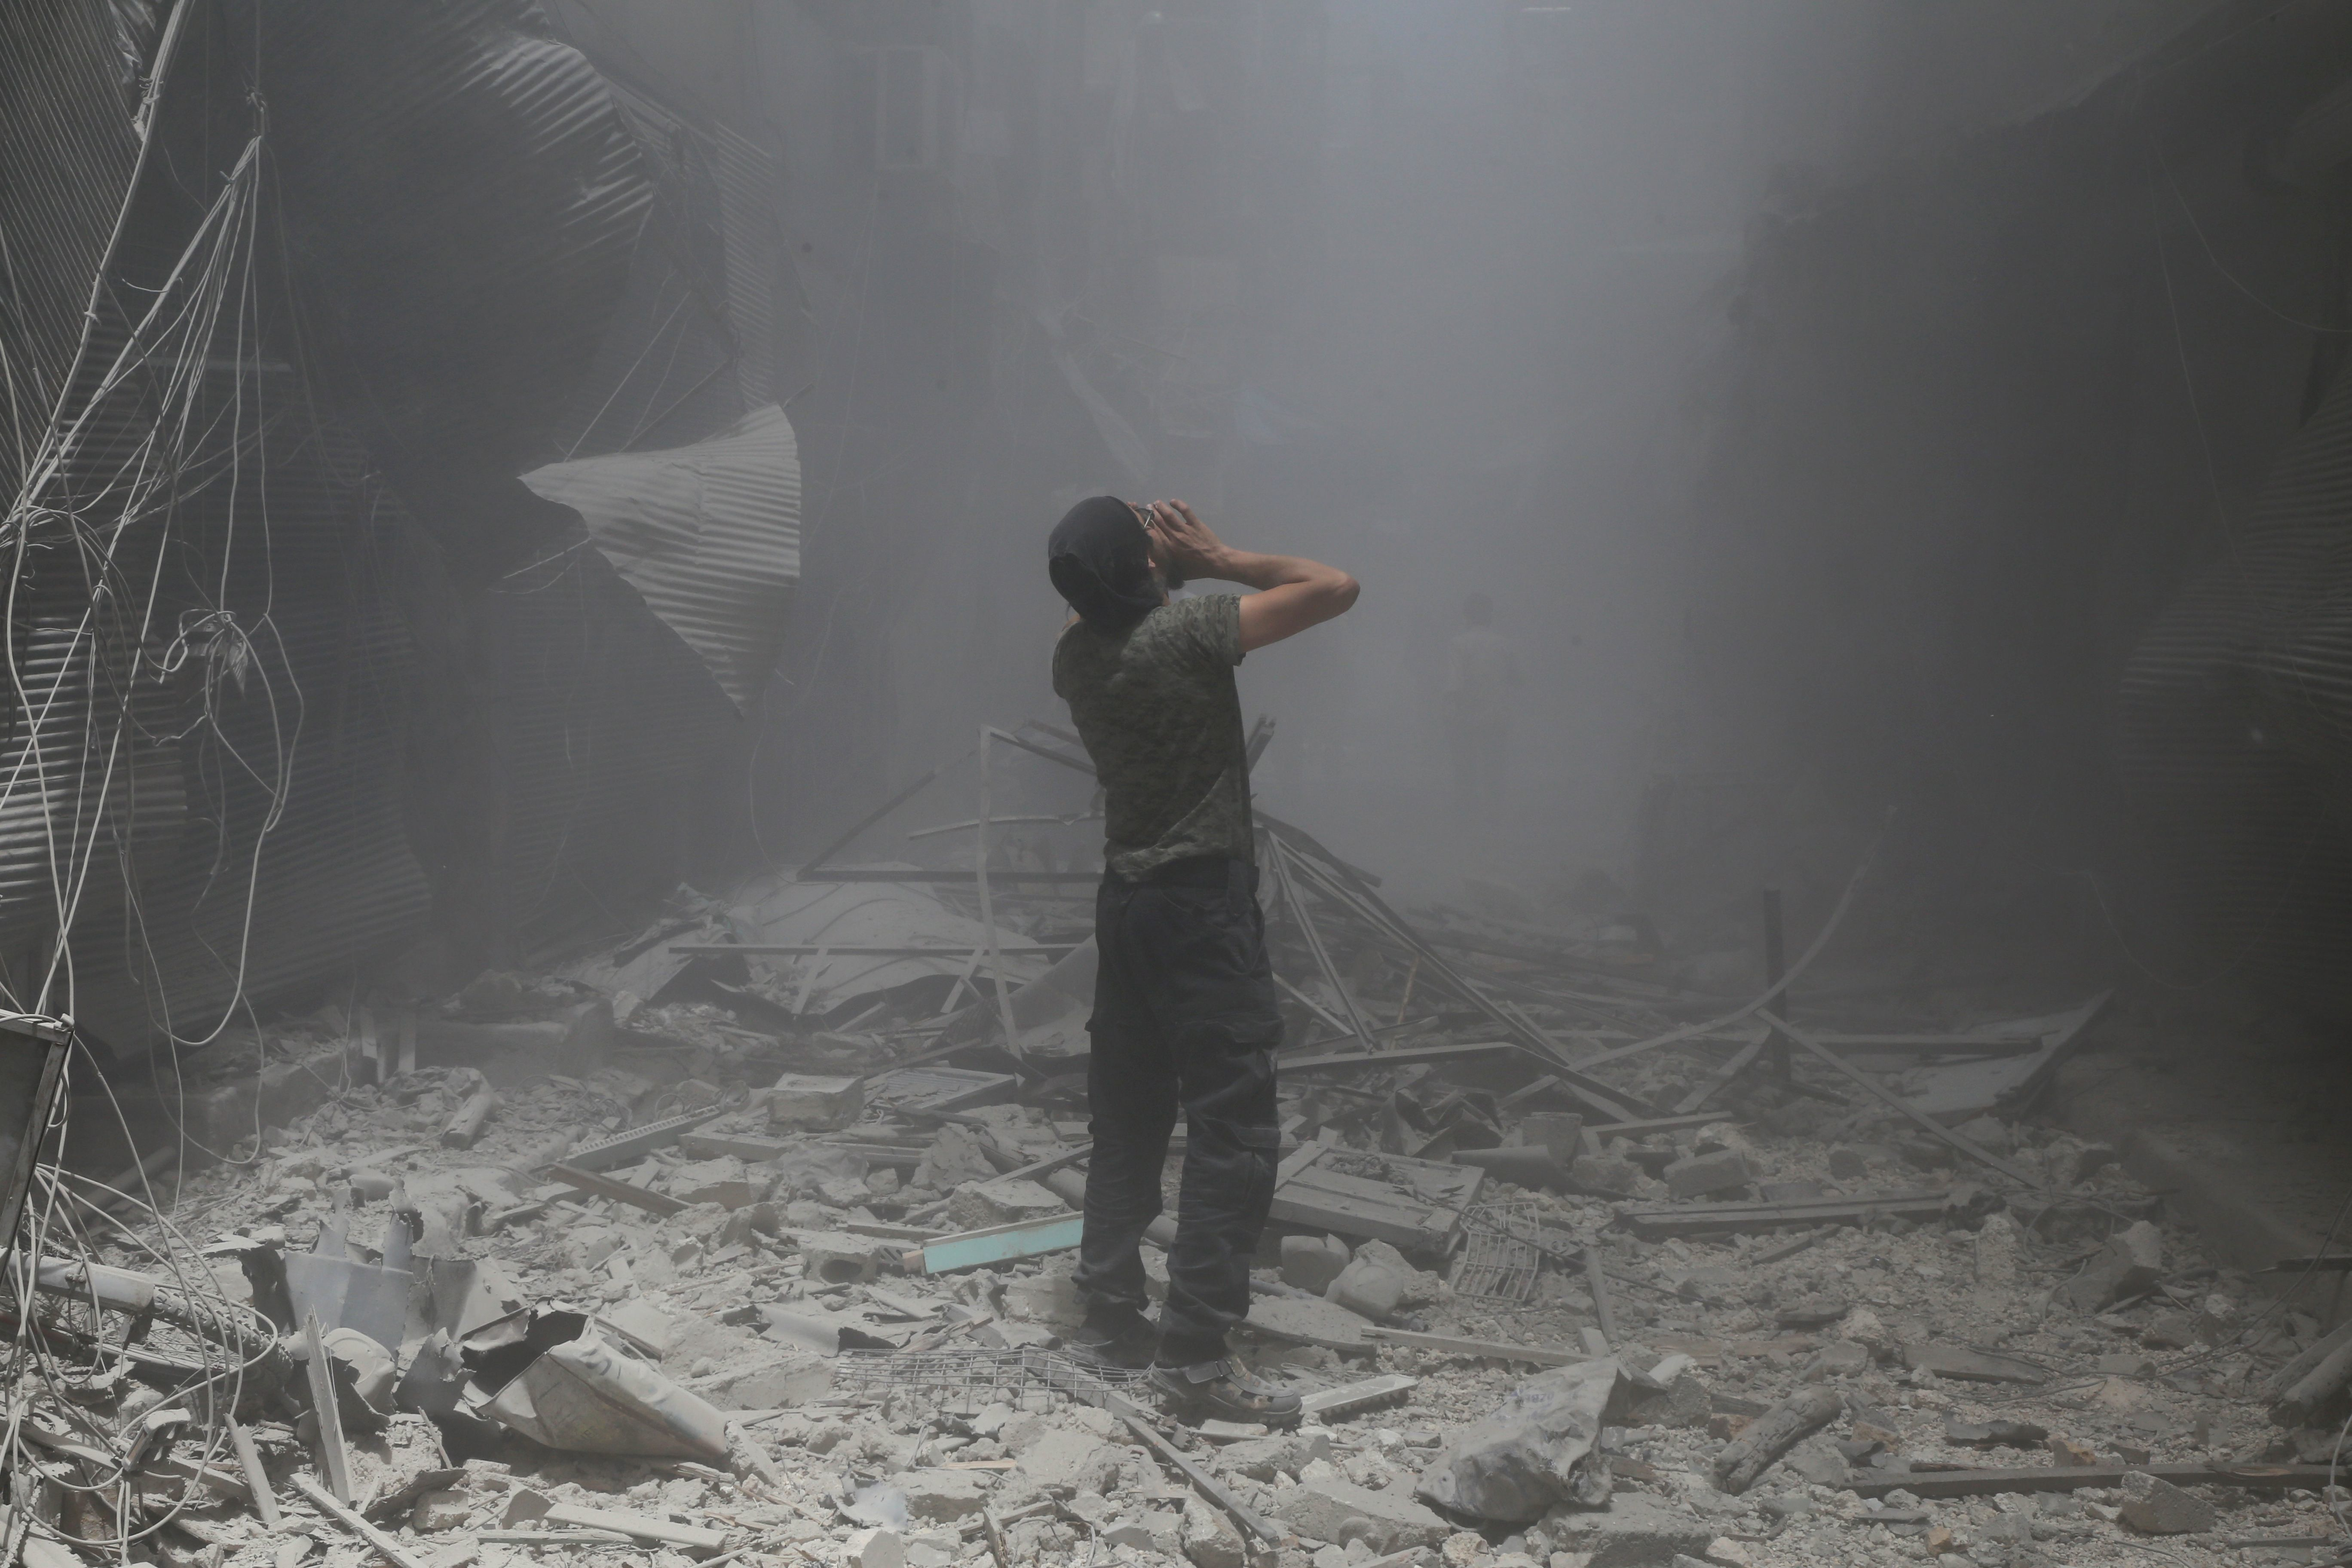 TOPSHOT - A Syrian man reacts following a reported air strike by Syrian government forces in the rebel-held neighbourhood of Bustan al-Qasr on June 5, 2016. / AFP / Baraa Al-Halabi        (Photo credit should read BARAA AL-HALABI/AFP/Getty Images)